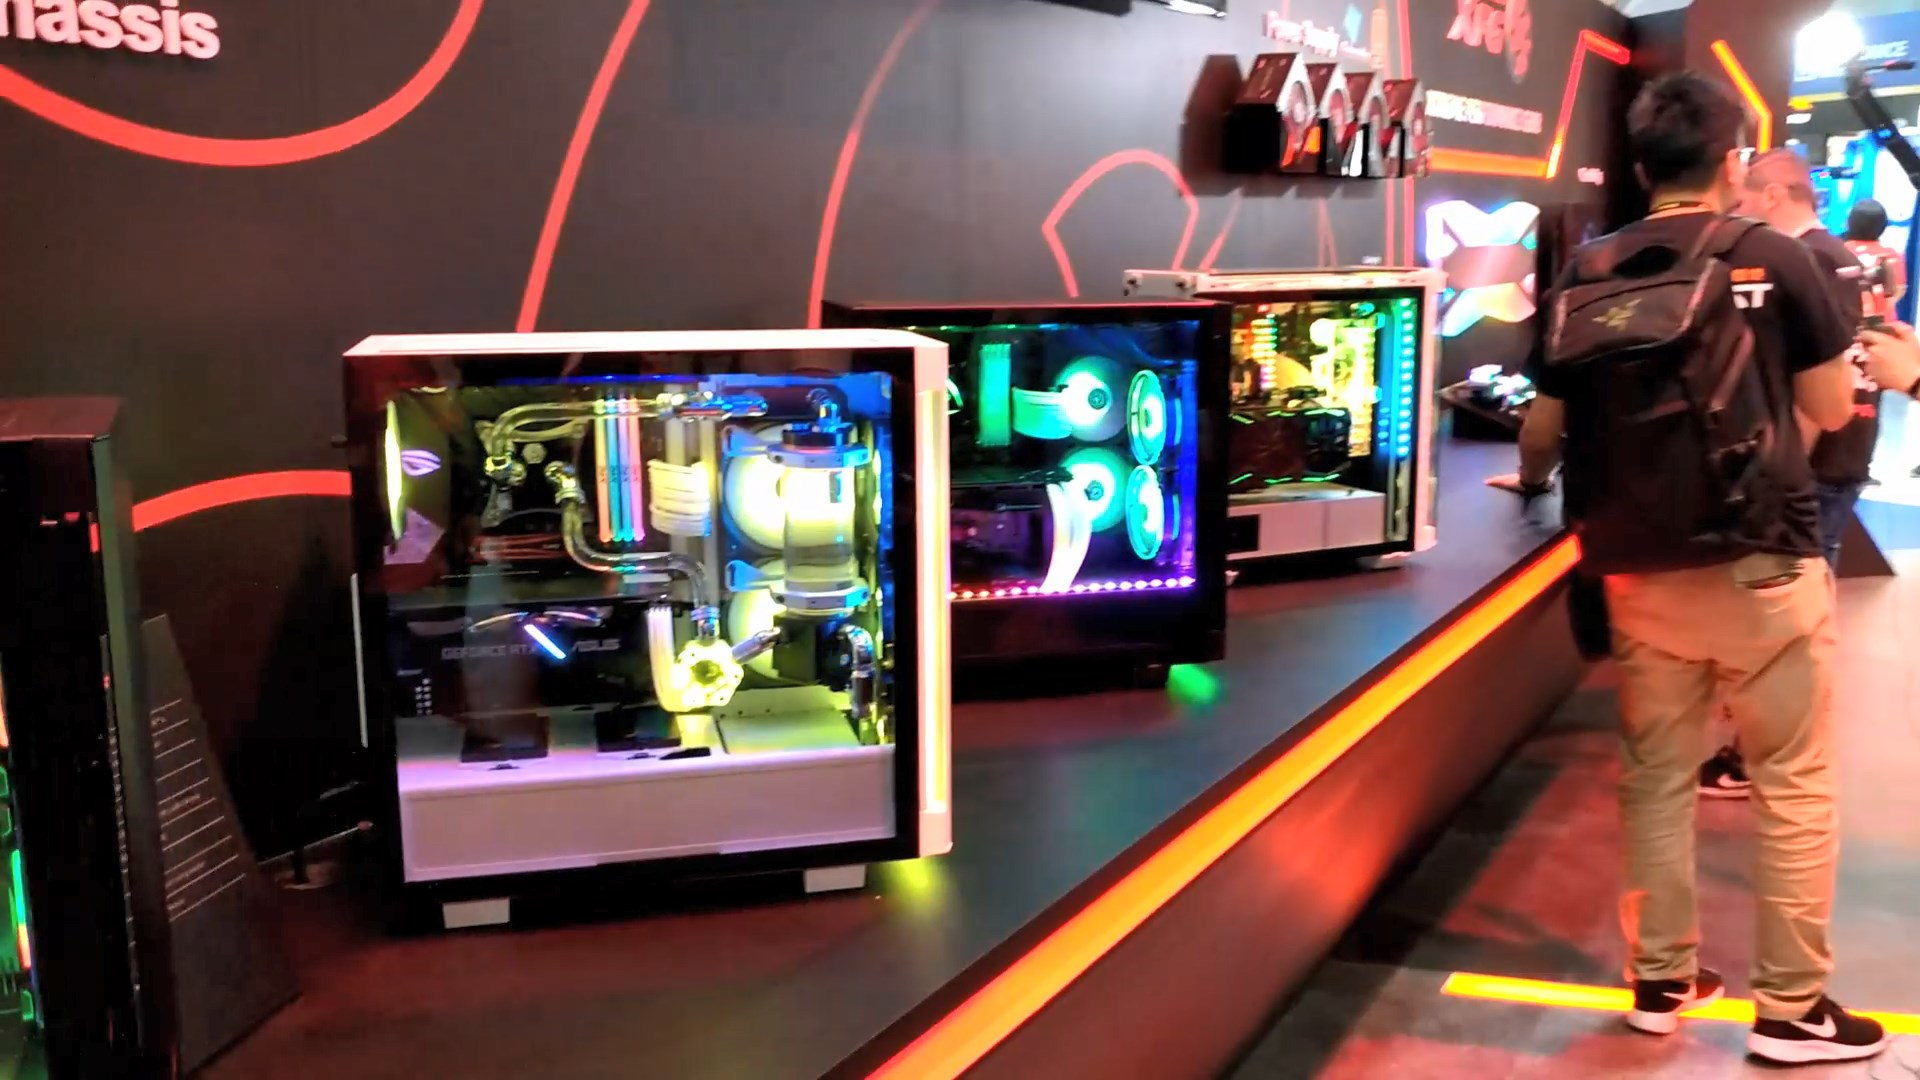 XPG Casings - BattleCruiser and Invader at Computex 2019 6